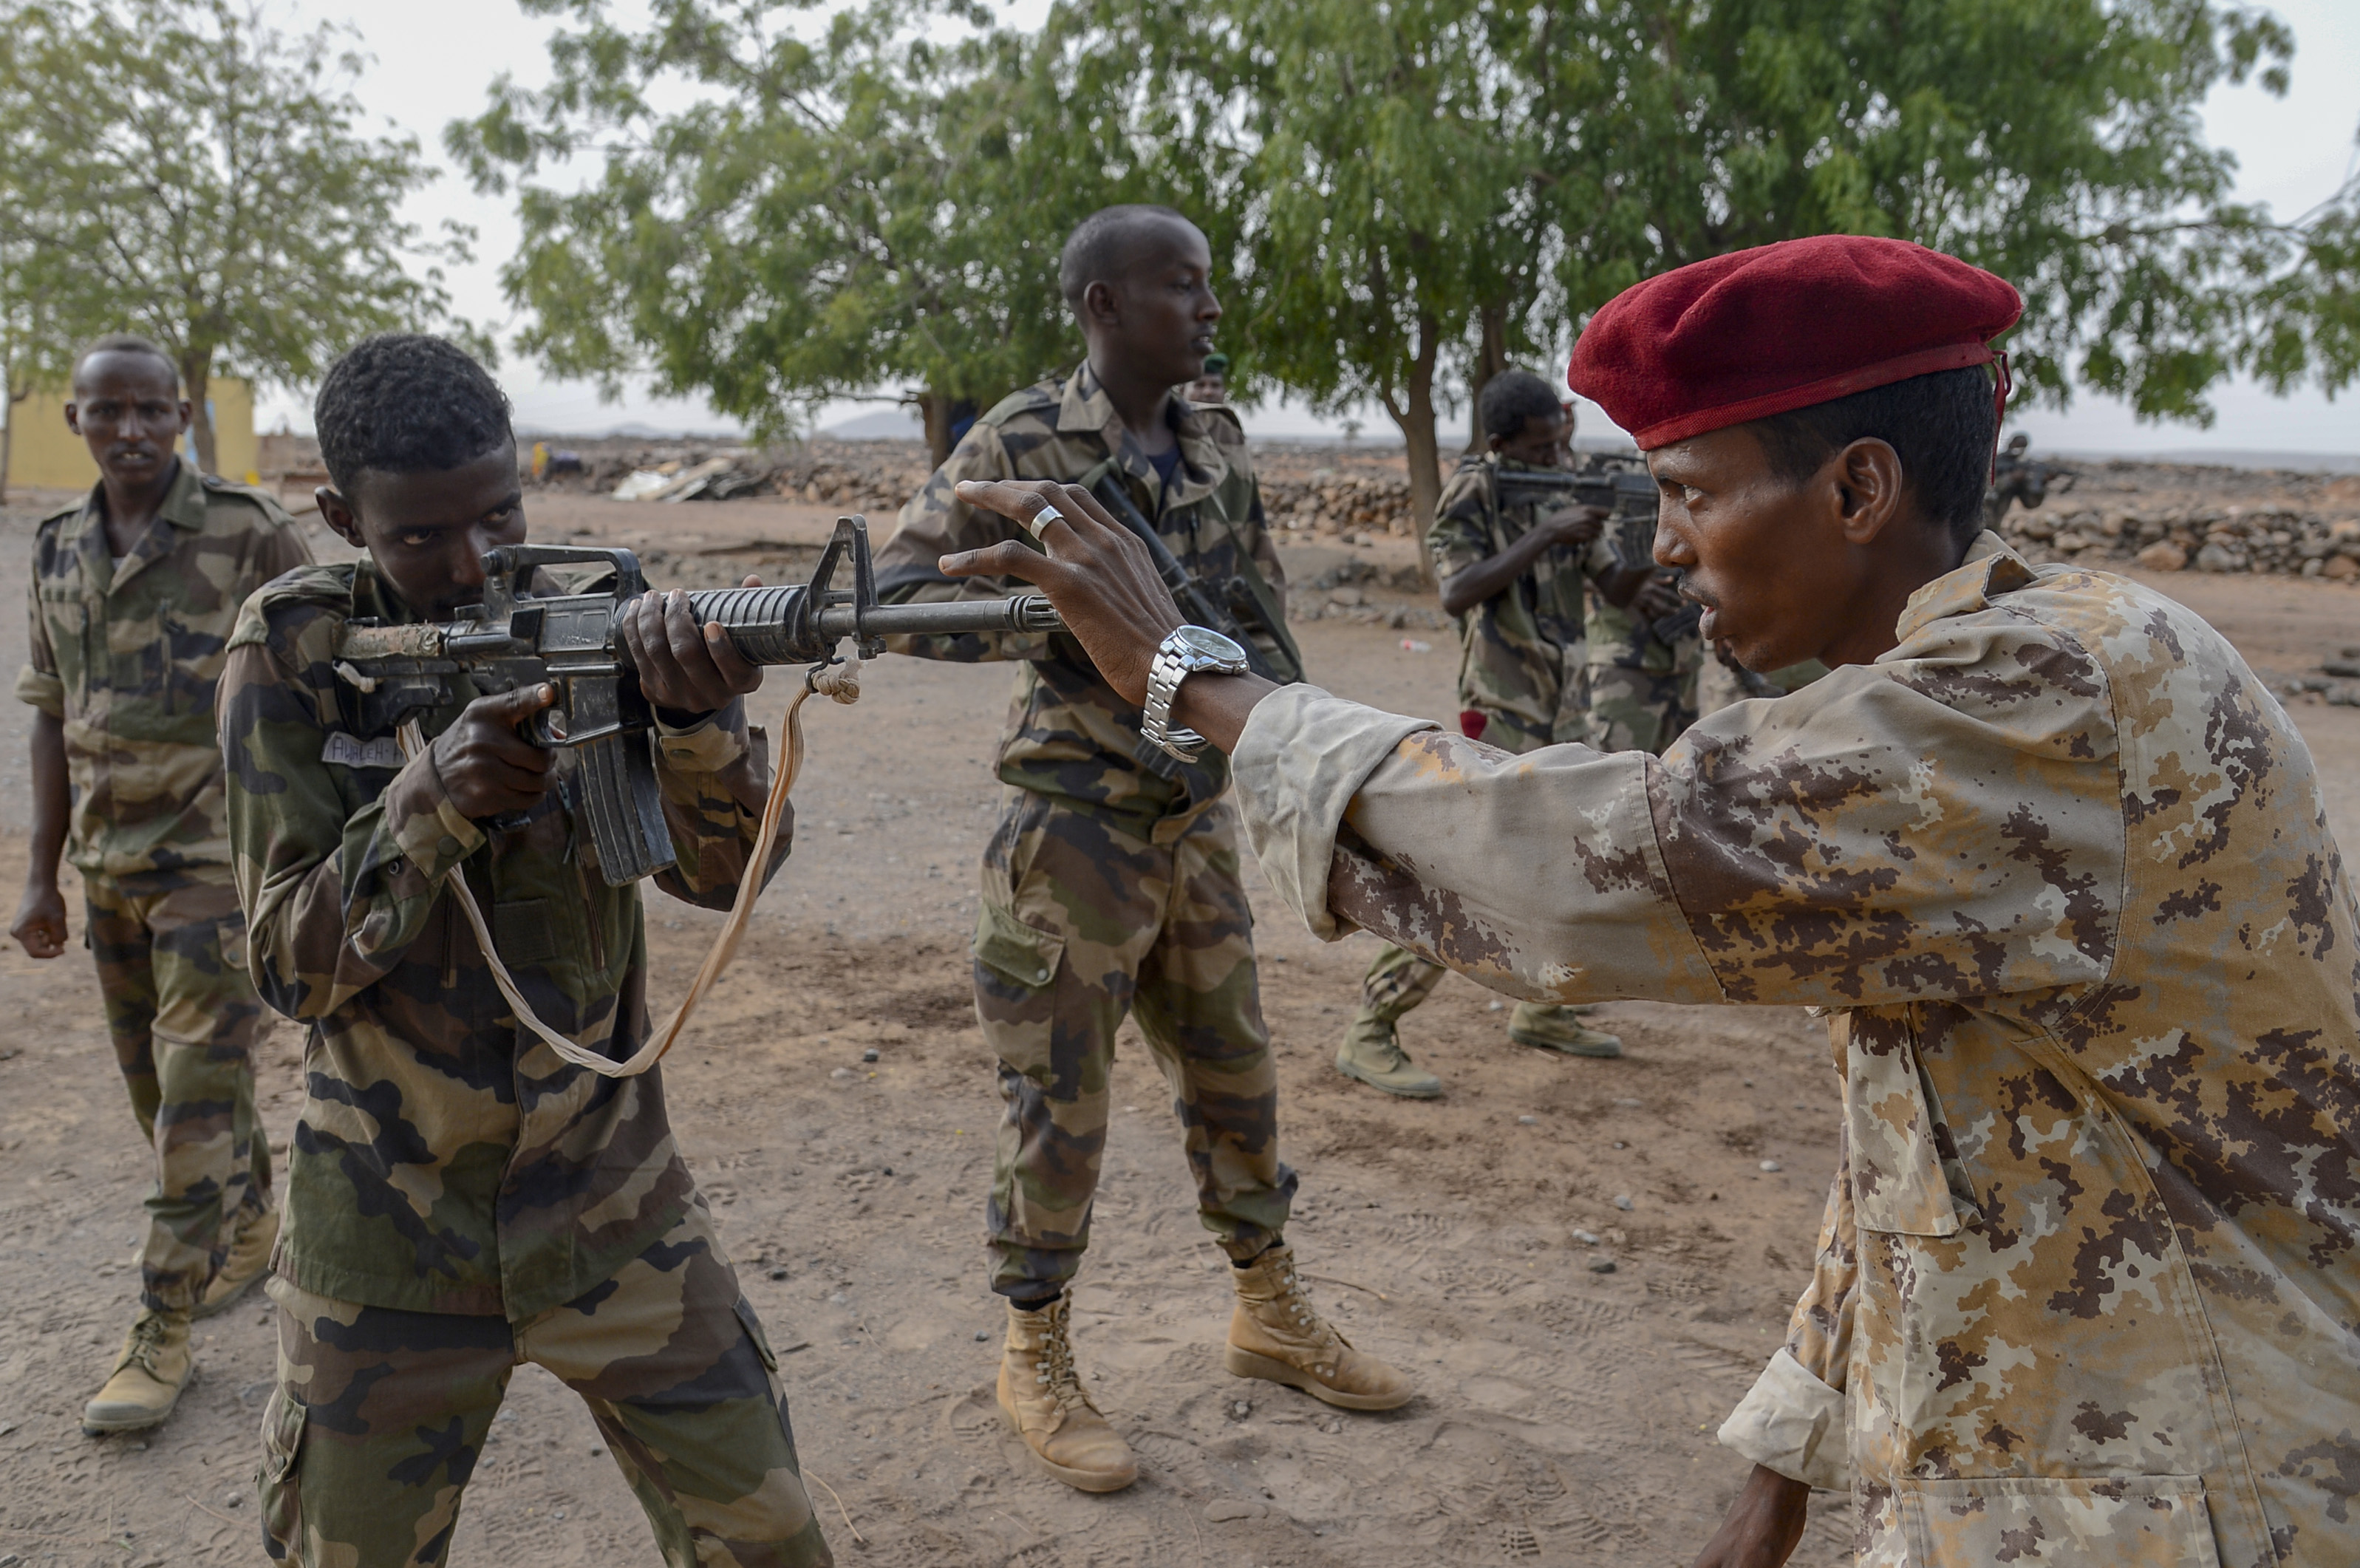 A non-commissioned officer with the Djiboutian Army's Rapid Intervention Battalion (RIB) instructs a new recruit at a training site outside Djibouti City, July 3, 2018. The RIB is a U.S. Army trained unit that was formed to respond to crises and promote regional security and stability in East Africa. (U.S. Navy Photo by Mass Communication Specialist 2nd Class Timothy M. Ahearn)